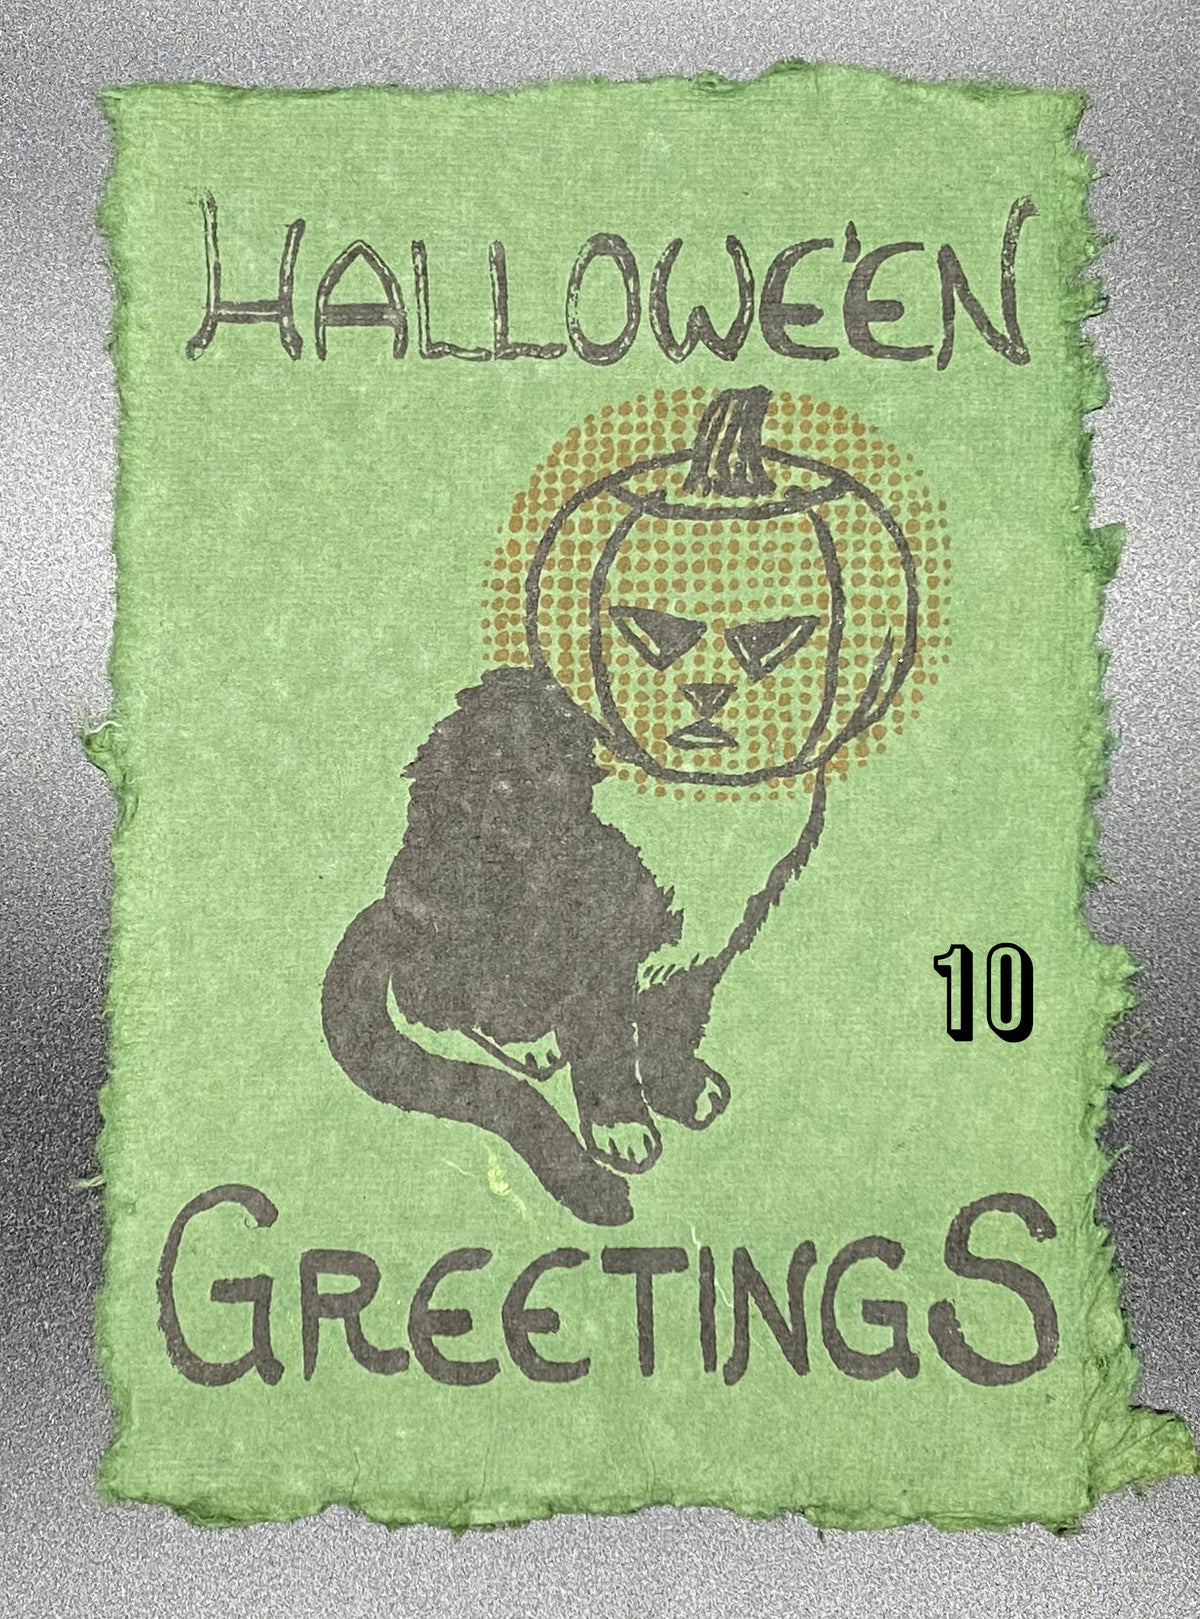 Image of Pumpkin Cat - Hallowe'en Greetings print